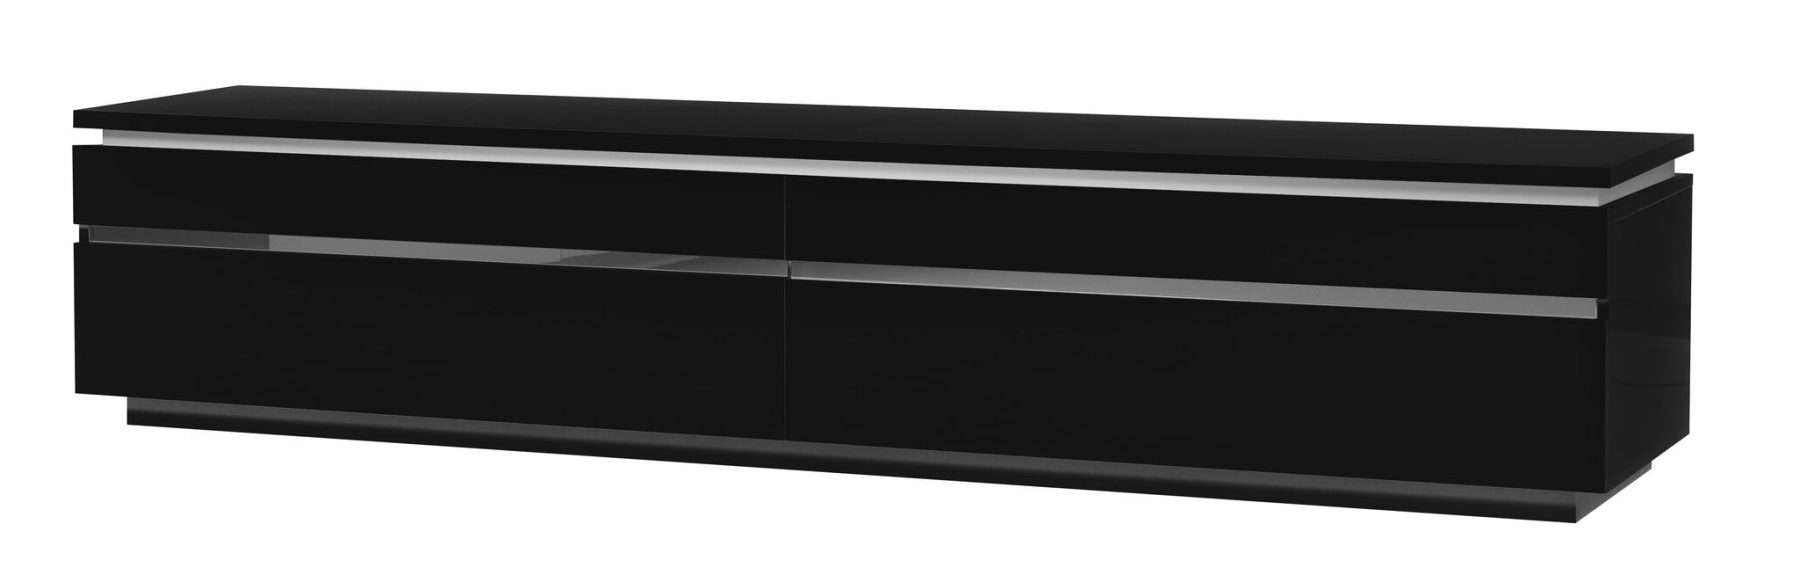 Logan Black Gloss Tv Unit & Lights | Free Delivery | Fads Pertaining To Black Gloss Tv Cabinets (View 11 of 20)